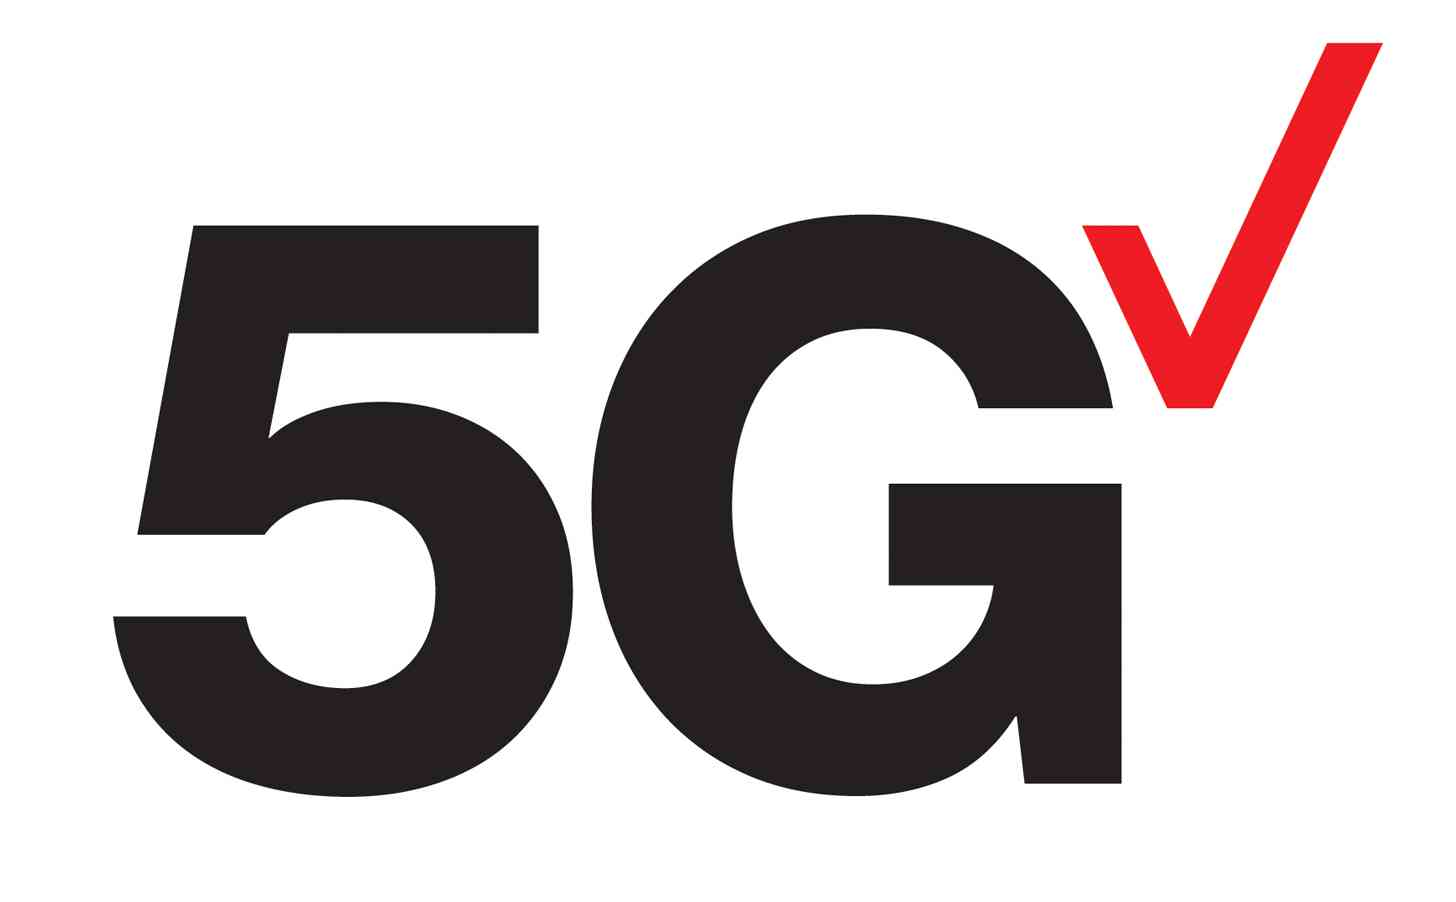 Verizon 5G logo official